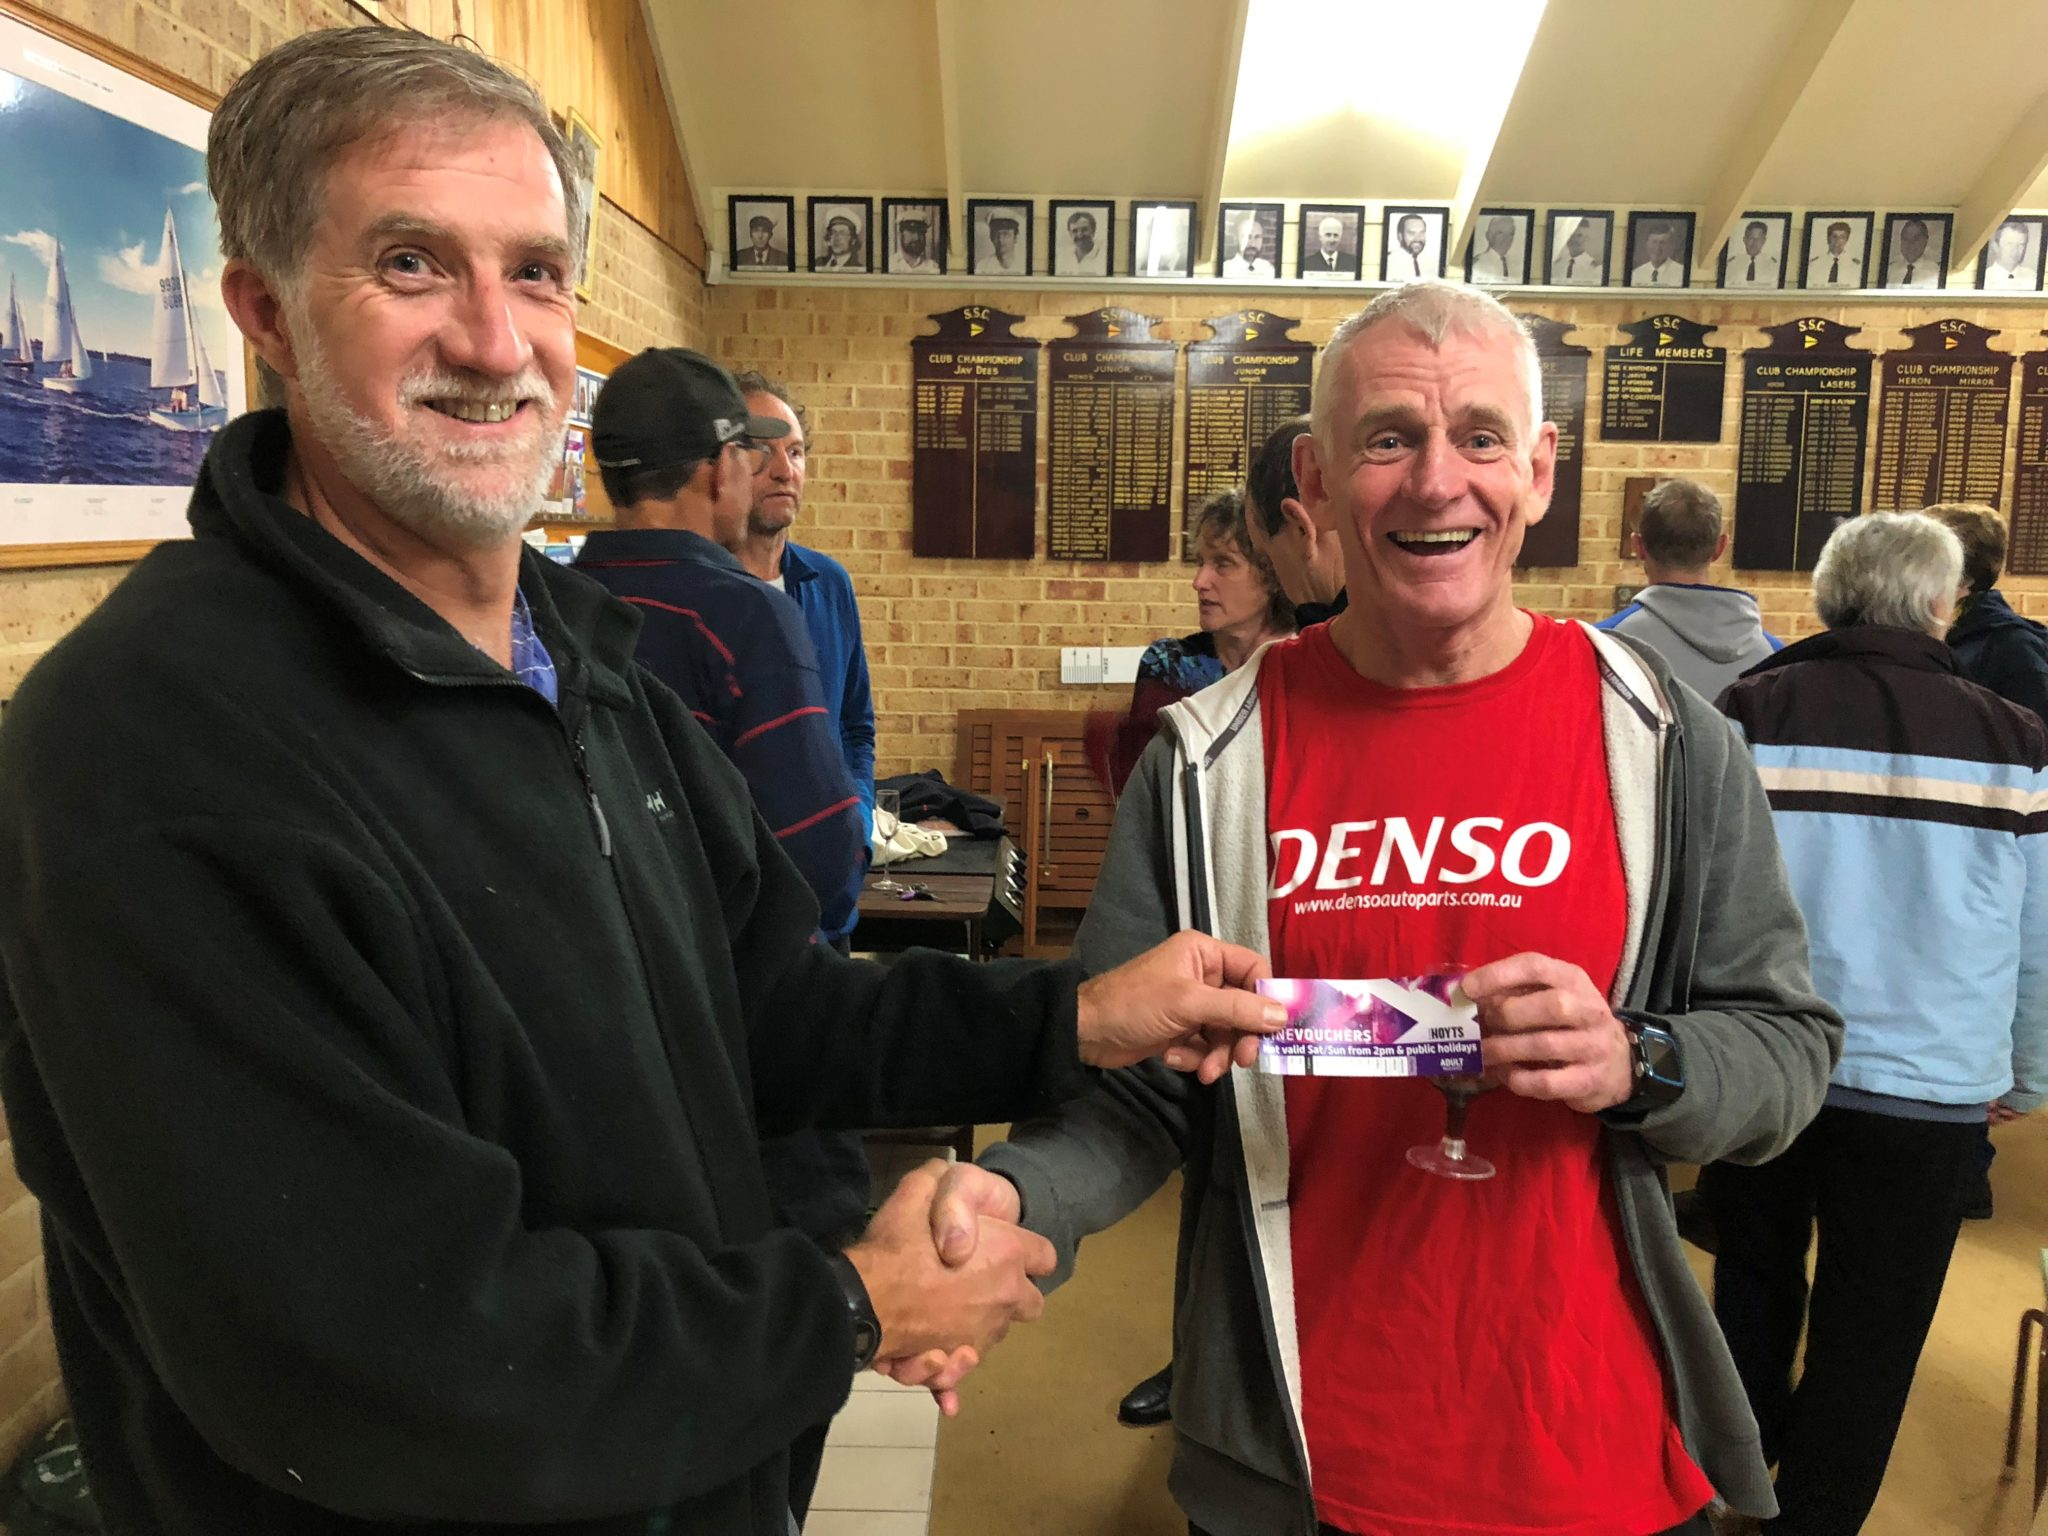 Tues 10th July 2018 : Tonight's photo shows Club Committee member Steve Coward presenting Ken Ringrose with a movie voucher